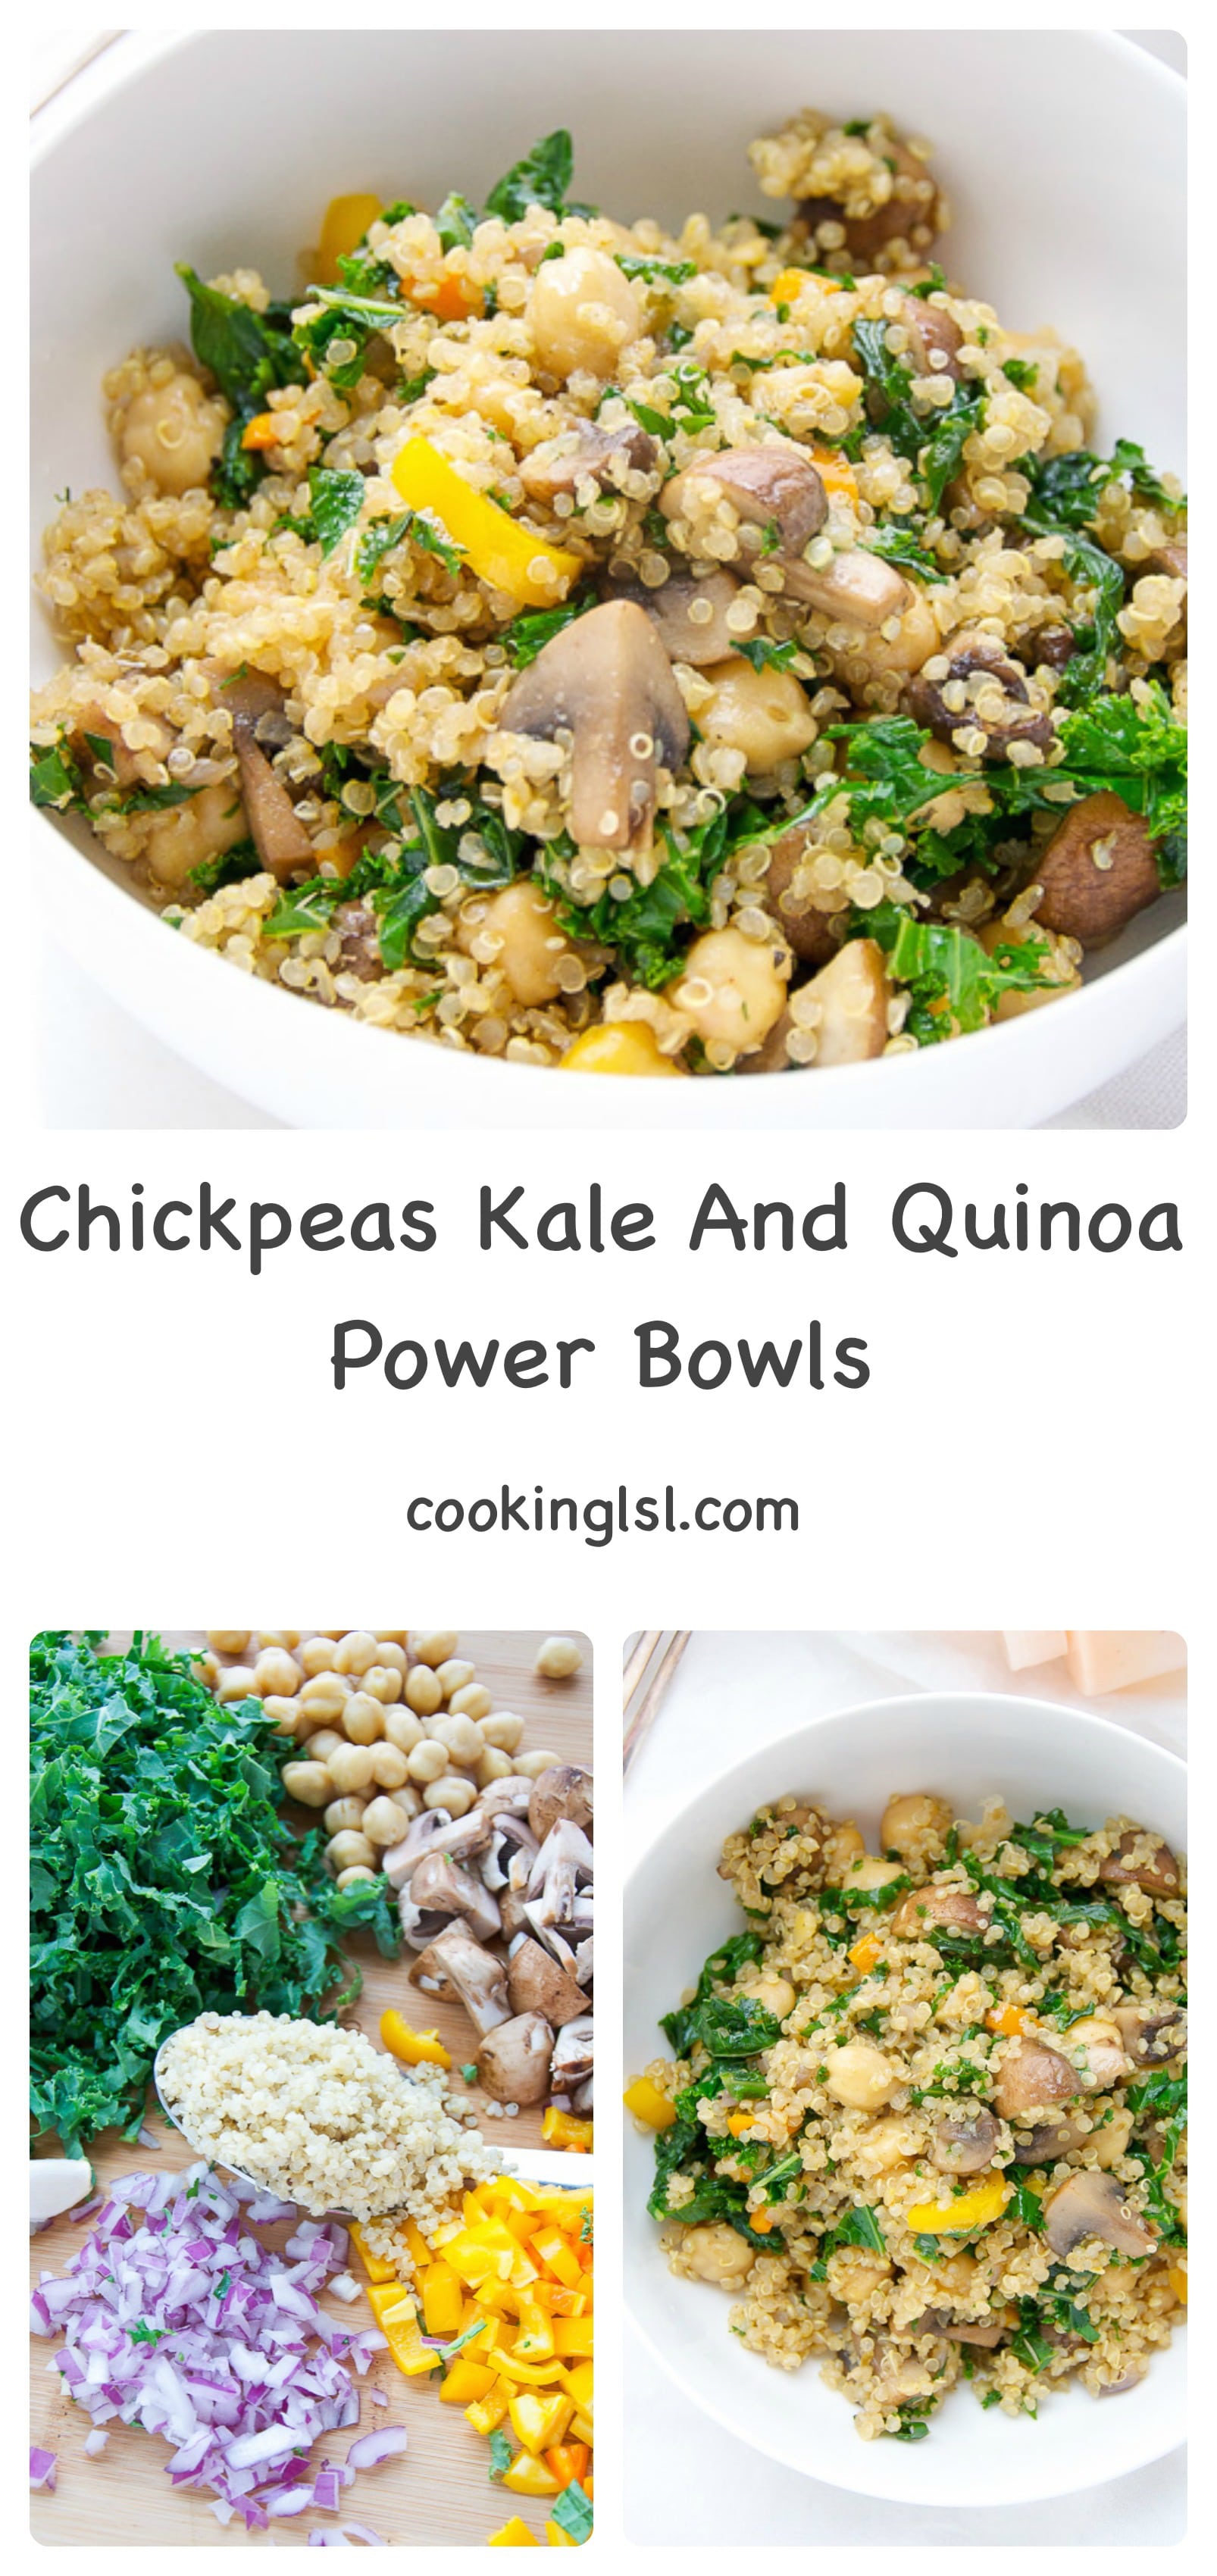 chickpeas-kale-quinoa-vegetable-nushroom-power-bowls